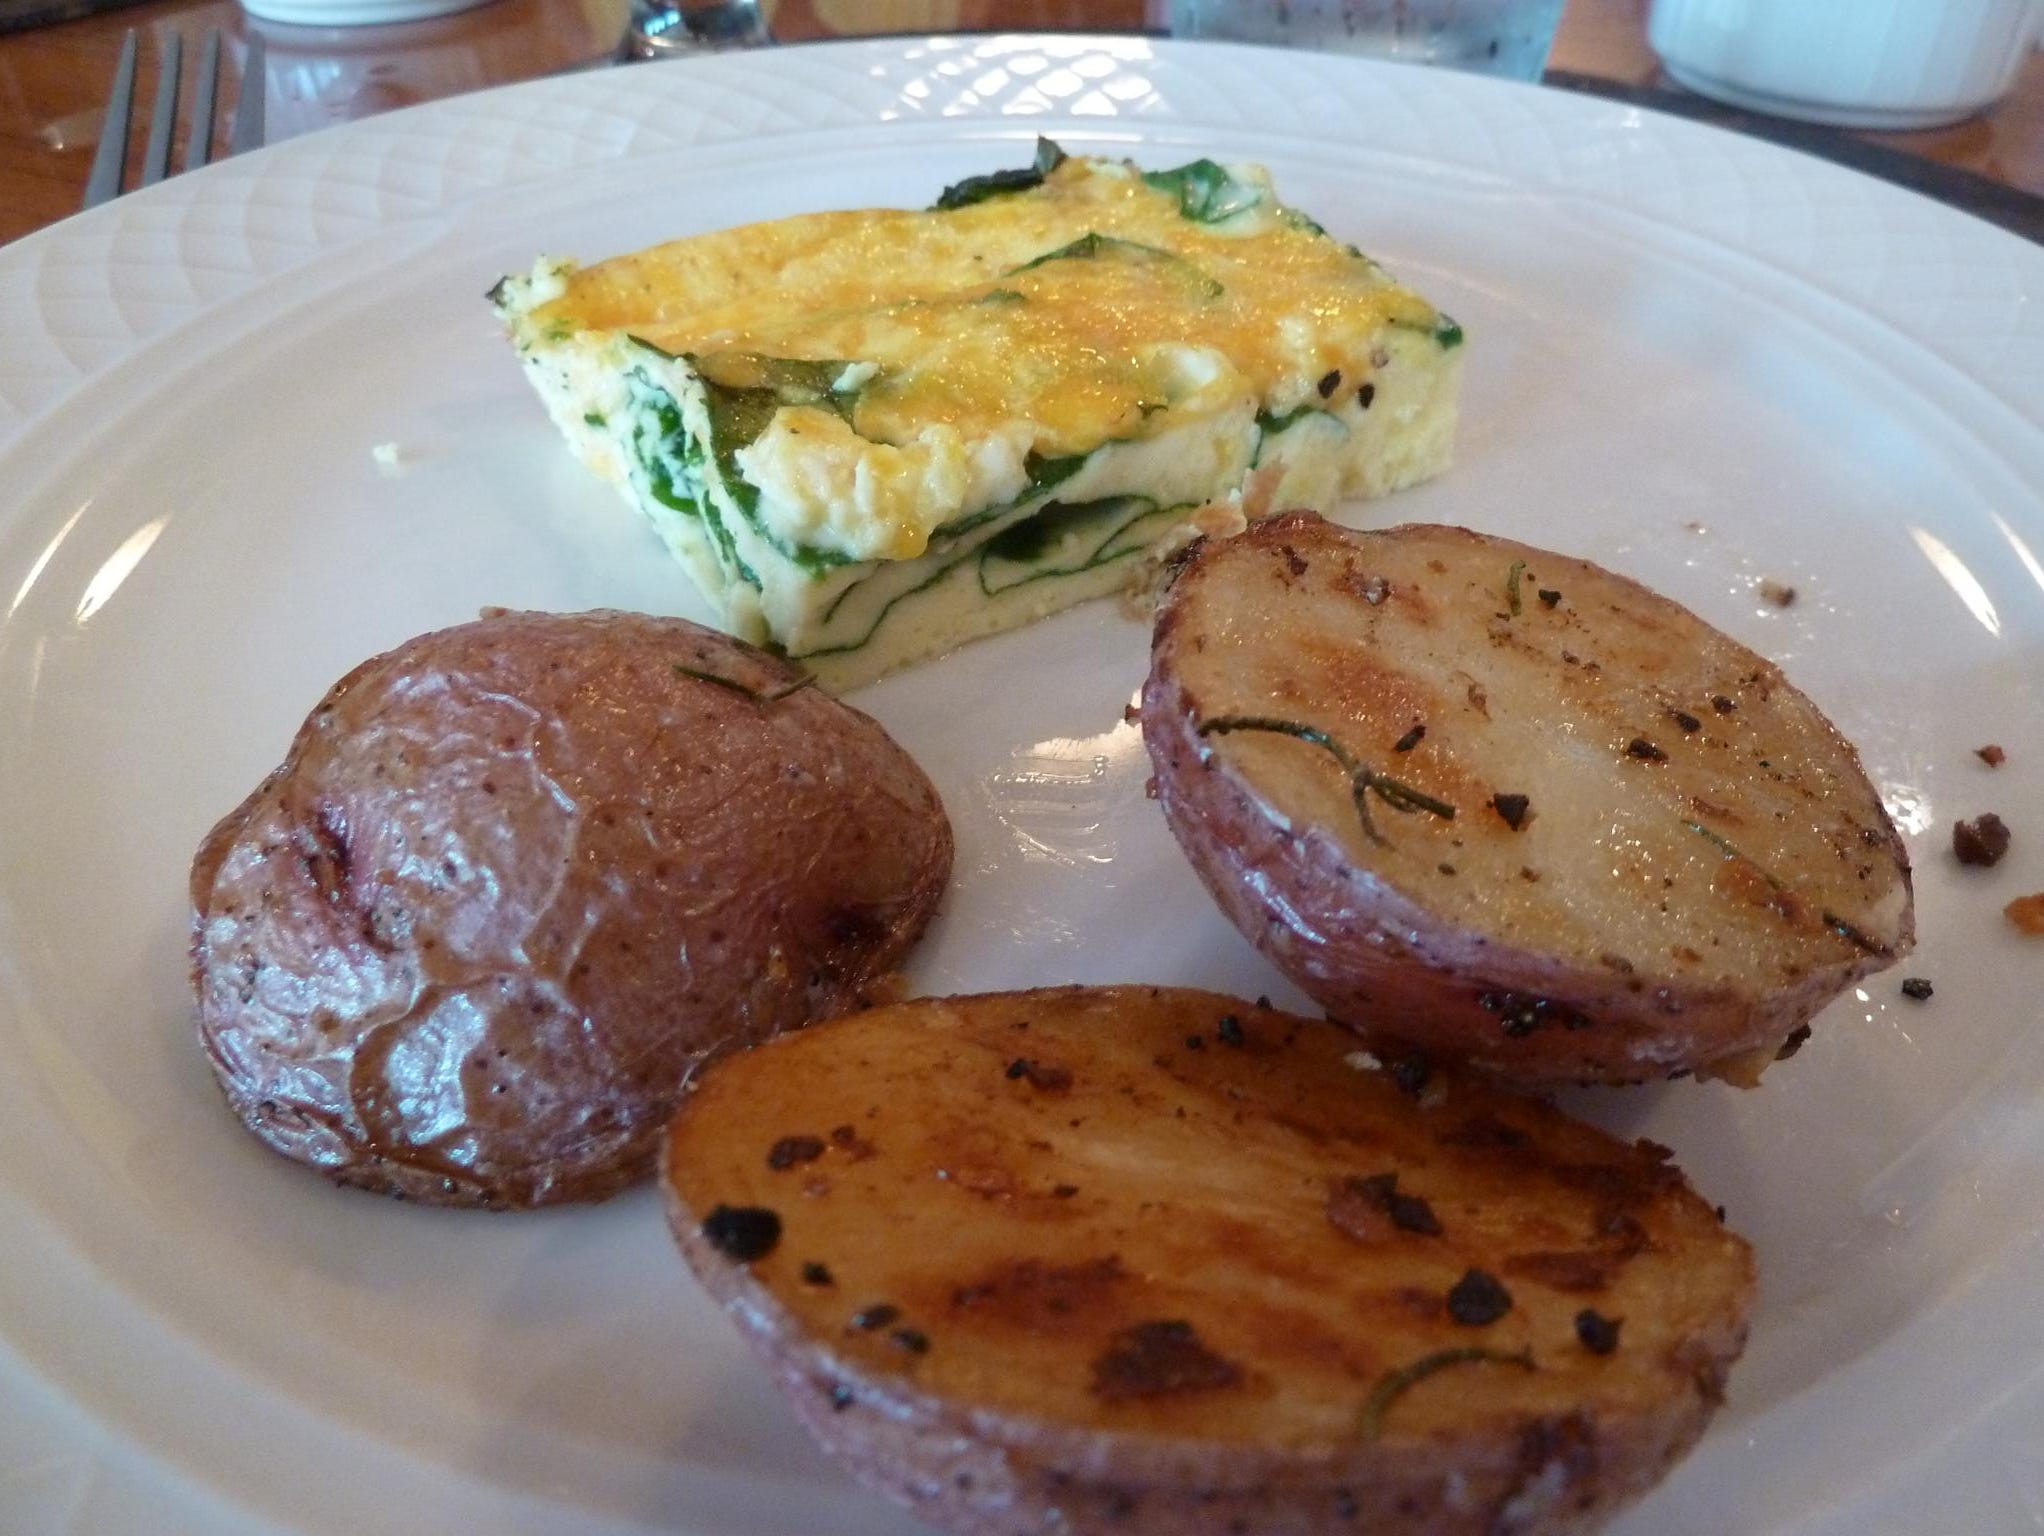 Every day begins with a new breakfast special, from French toast and banana pancakes to this spinach and cheddar frittata or eggs prepared to order. Breakfast also includes olive oil and rosemary potatoes, bacon and sausage.